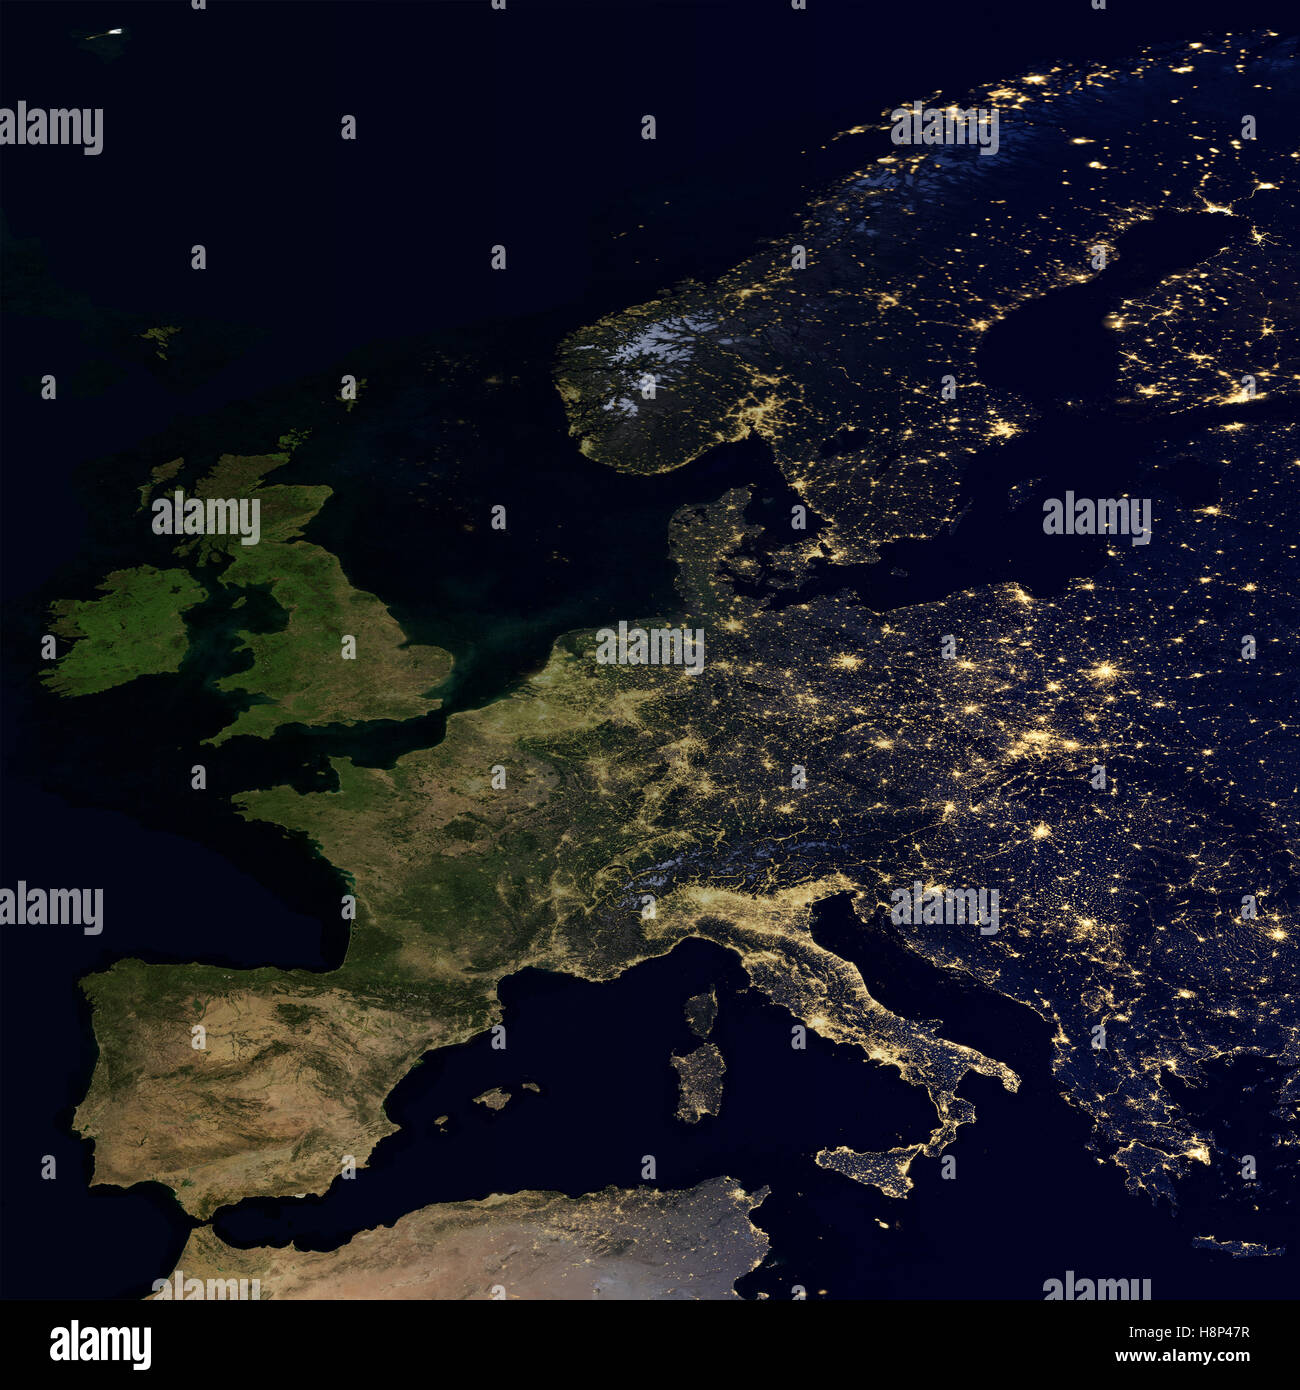 City lights on world map europe stock photo 125876123 alamy city lights on world map europe gumiabroncs Image collections